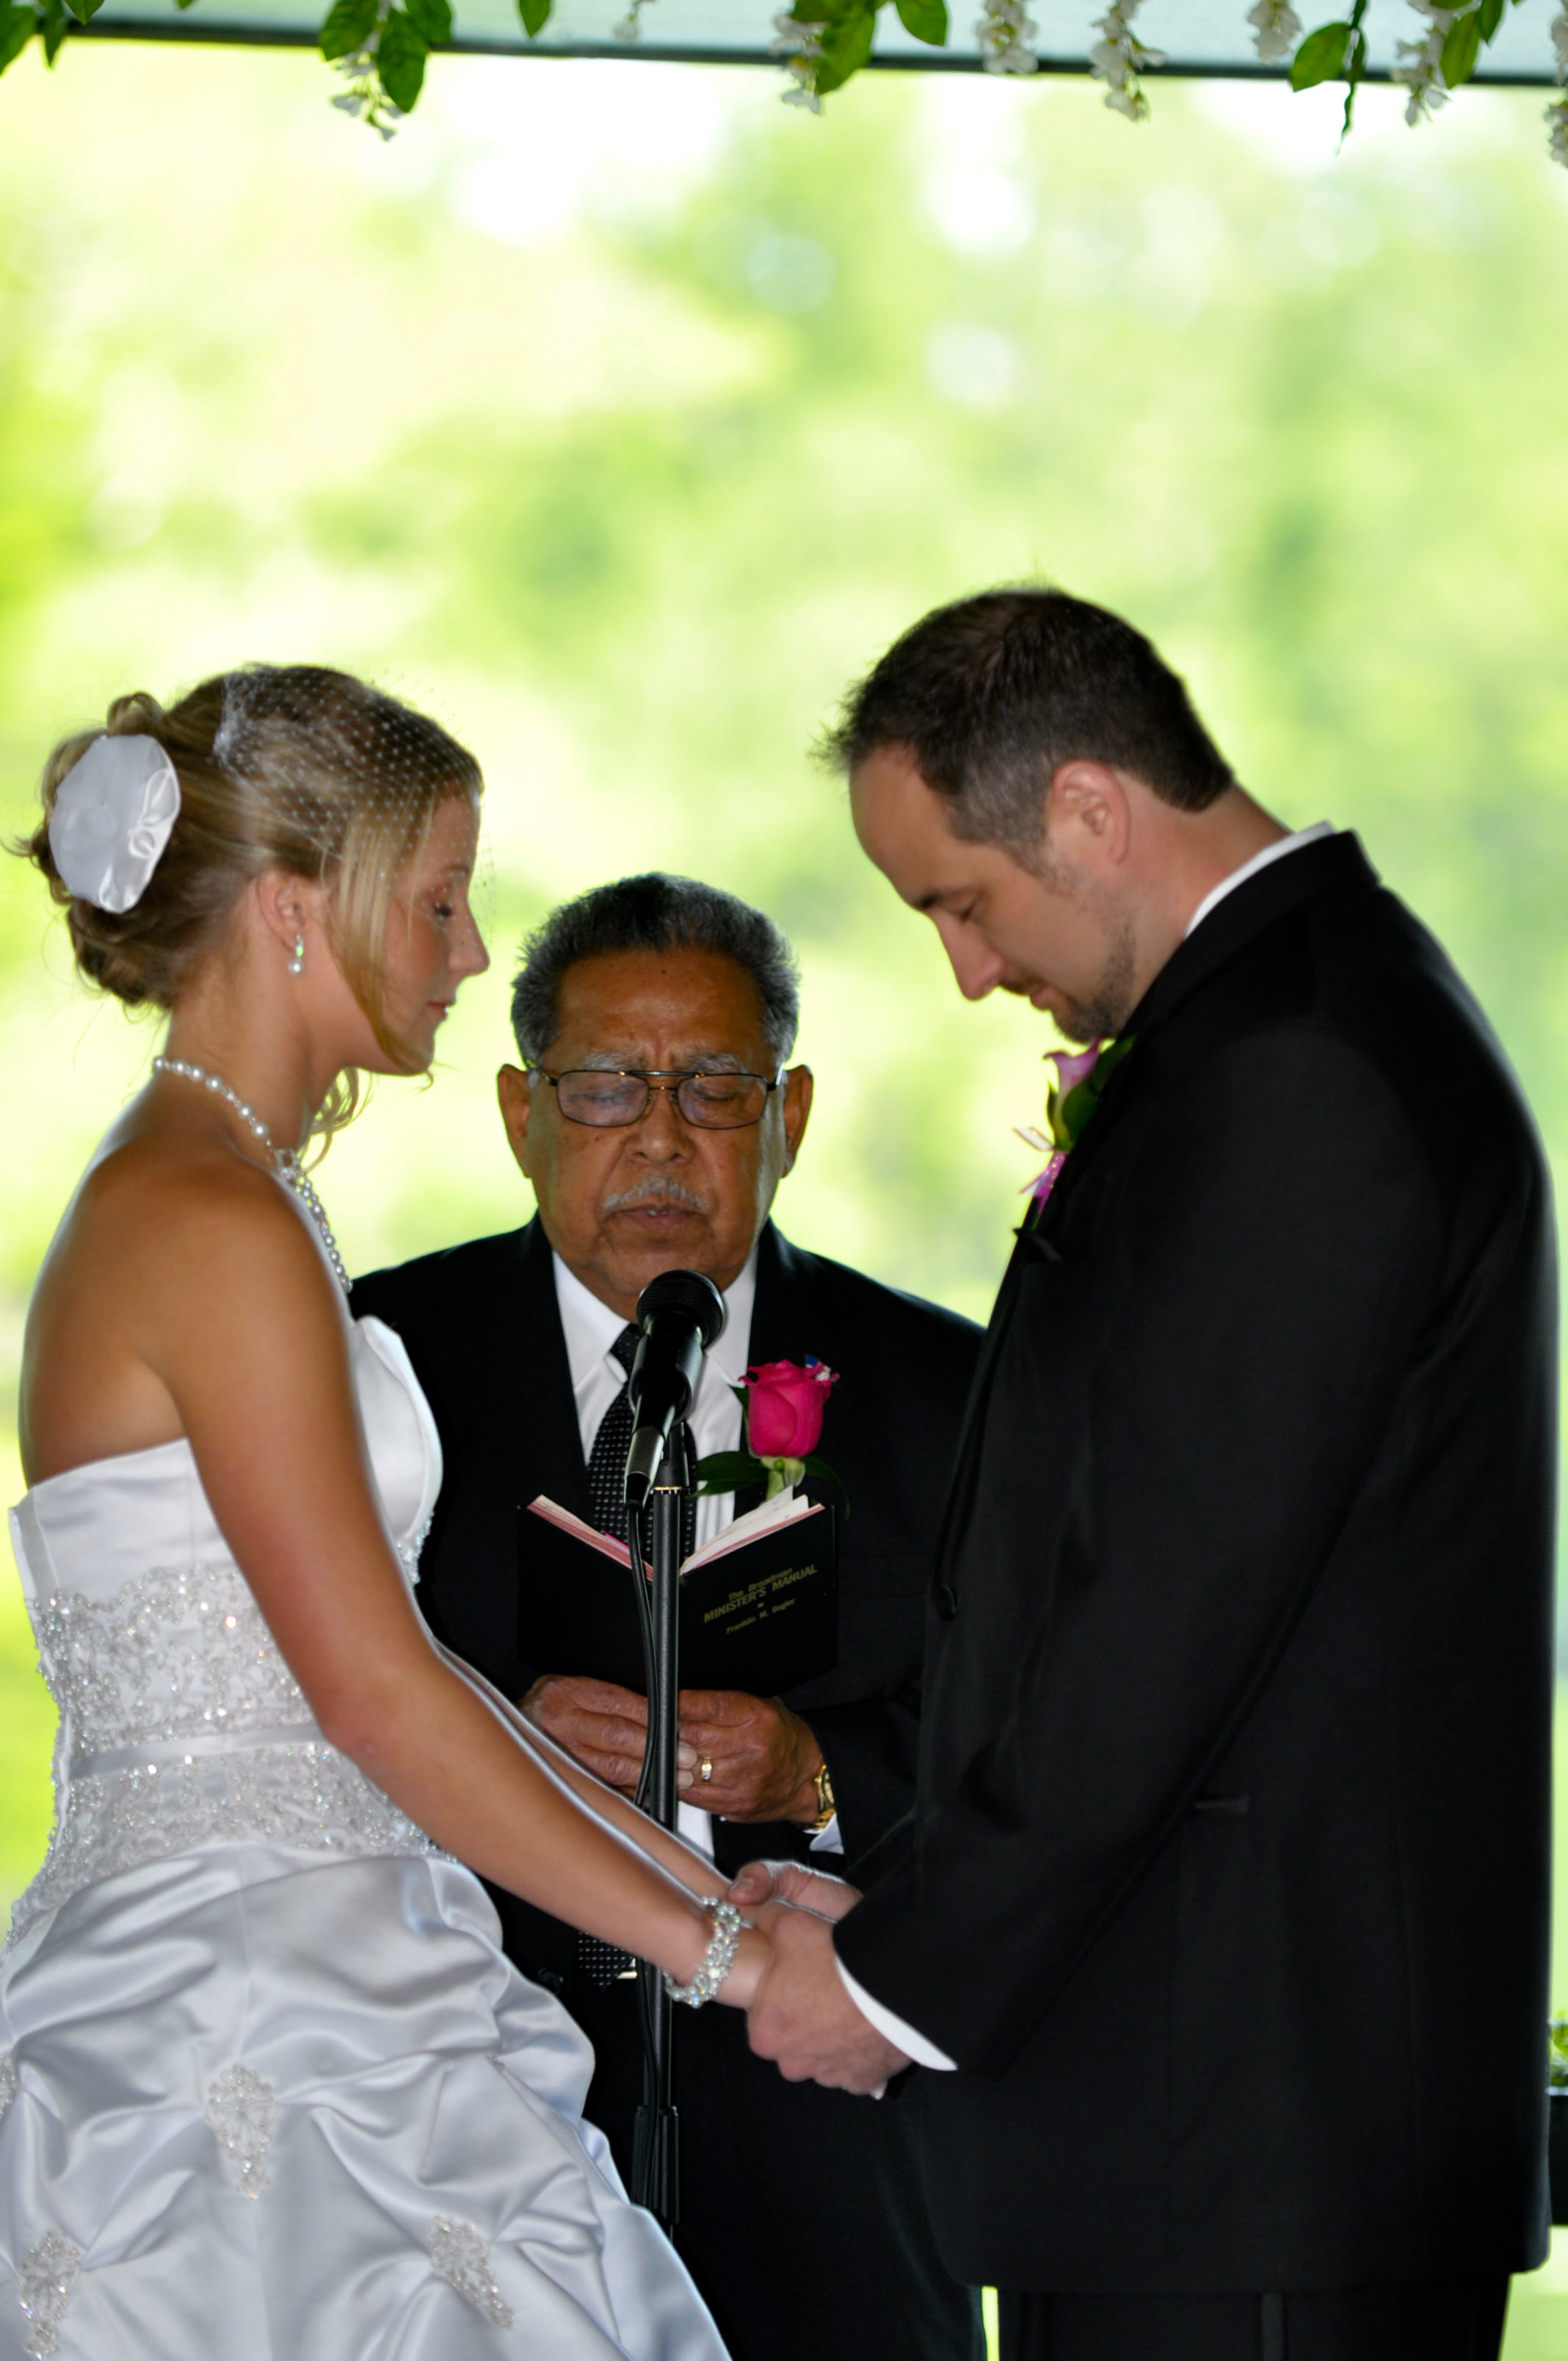 - A prayer before the vows at the Fragrance Garden in Greenfield Lake, Wilmington, NC. Billy Beach Photography. Affordable wedding.